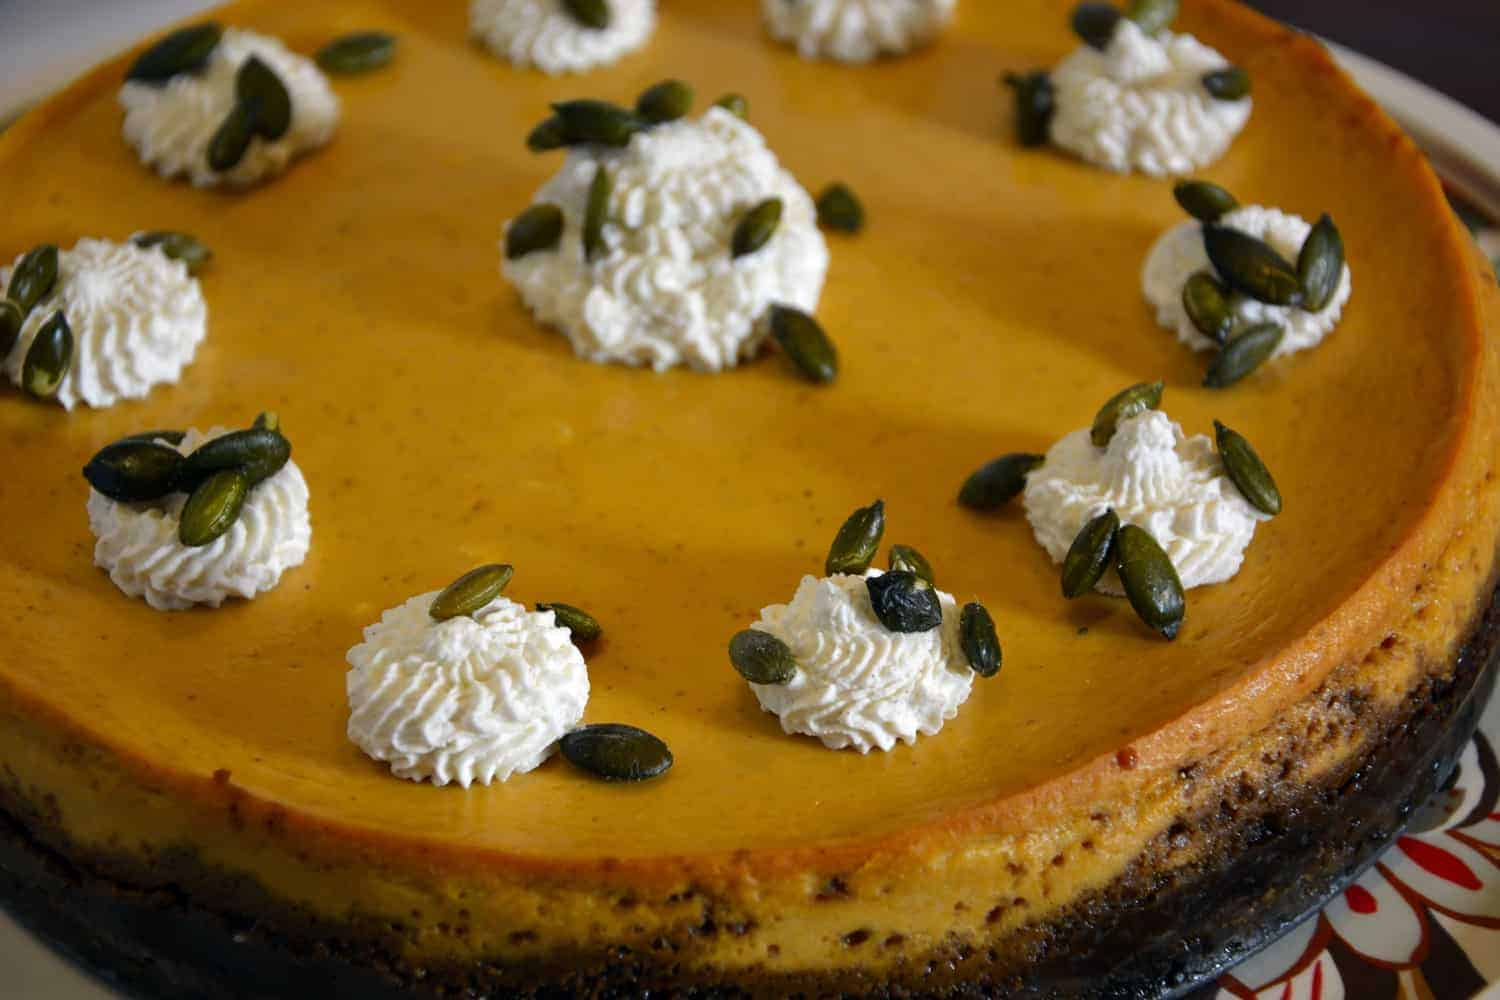 Pumpkin Cheesecake with Spiced Whipped Cream and Salted Pumpkin Seeds- complex flavors and textures, but simple to make. #pumkpin #cheesecake #pumpkincheesecake